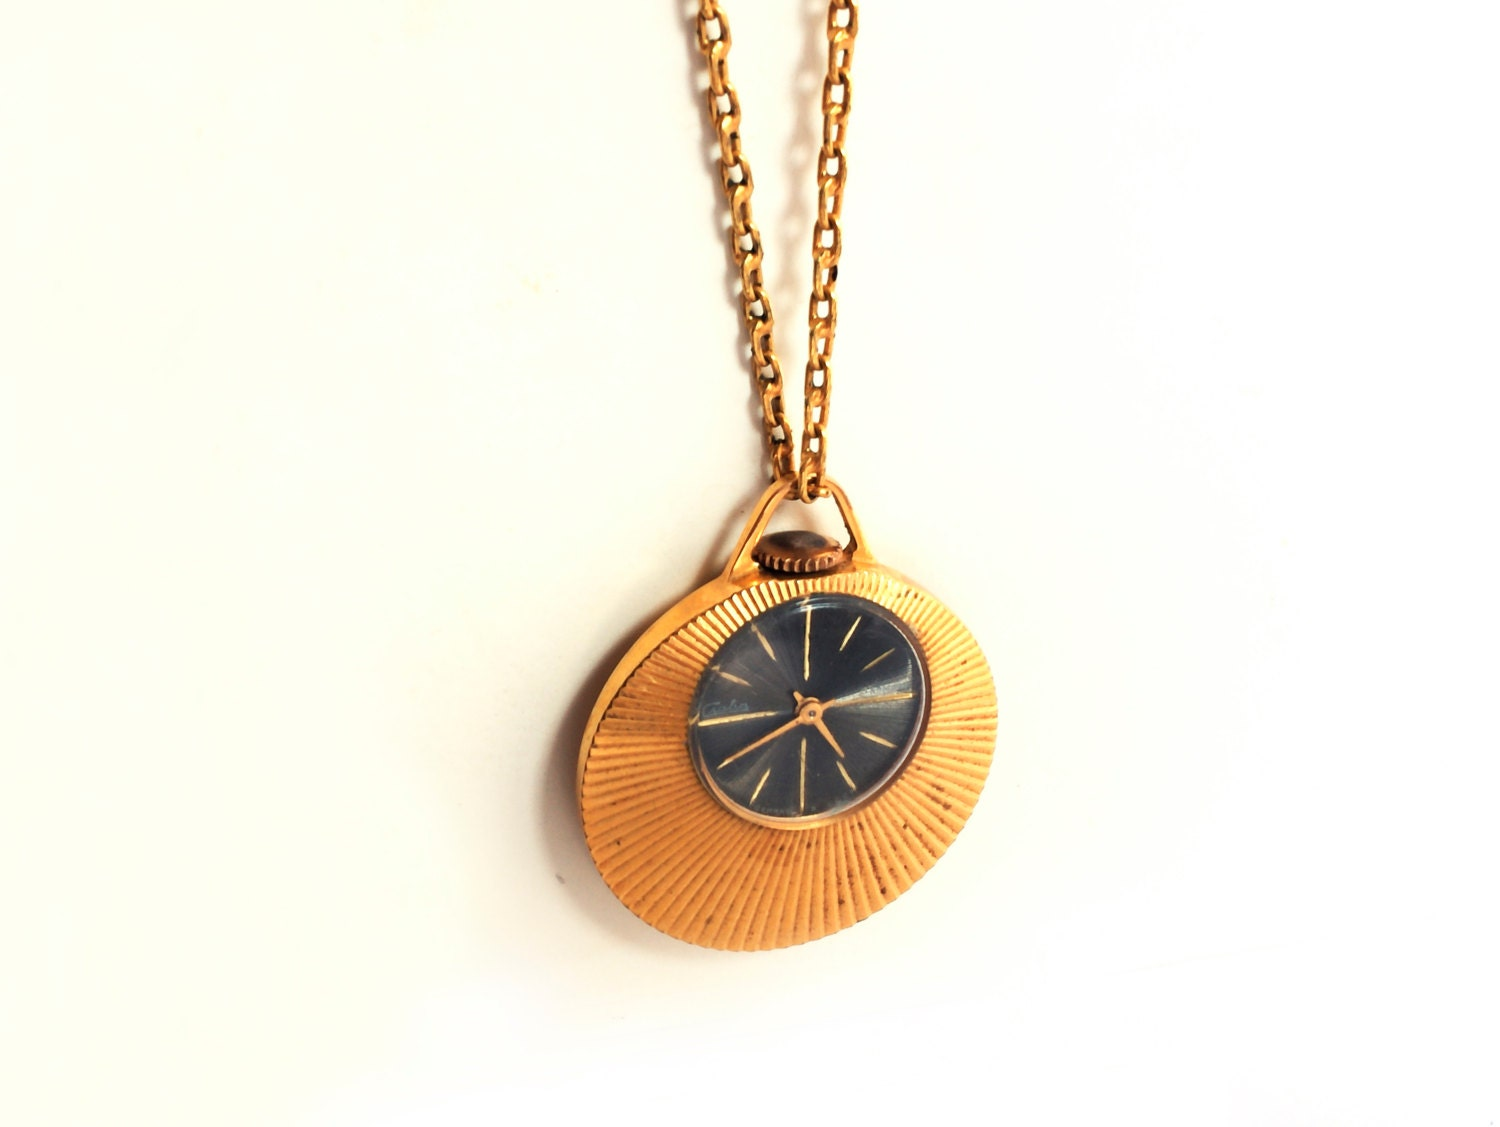 zodiac vintage watch itm retro chinese chain quartz ebay pendant watches animal pocket necklace